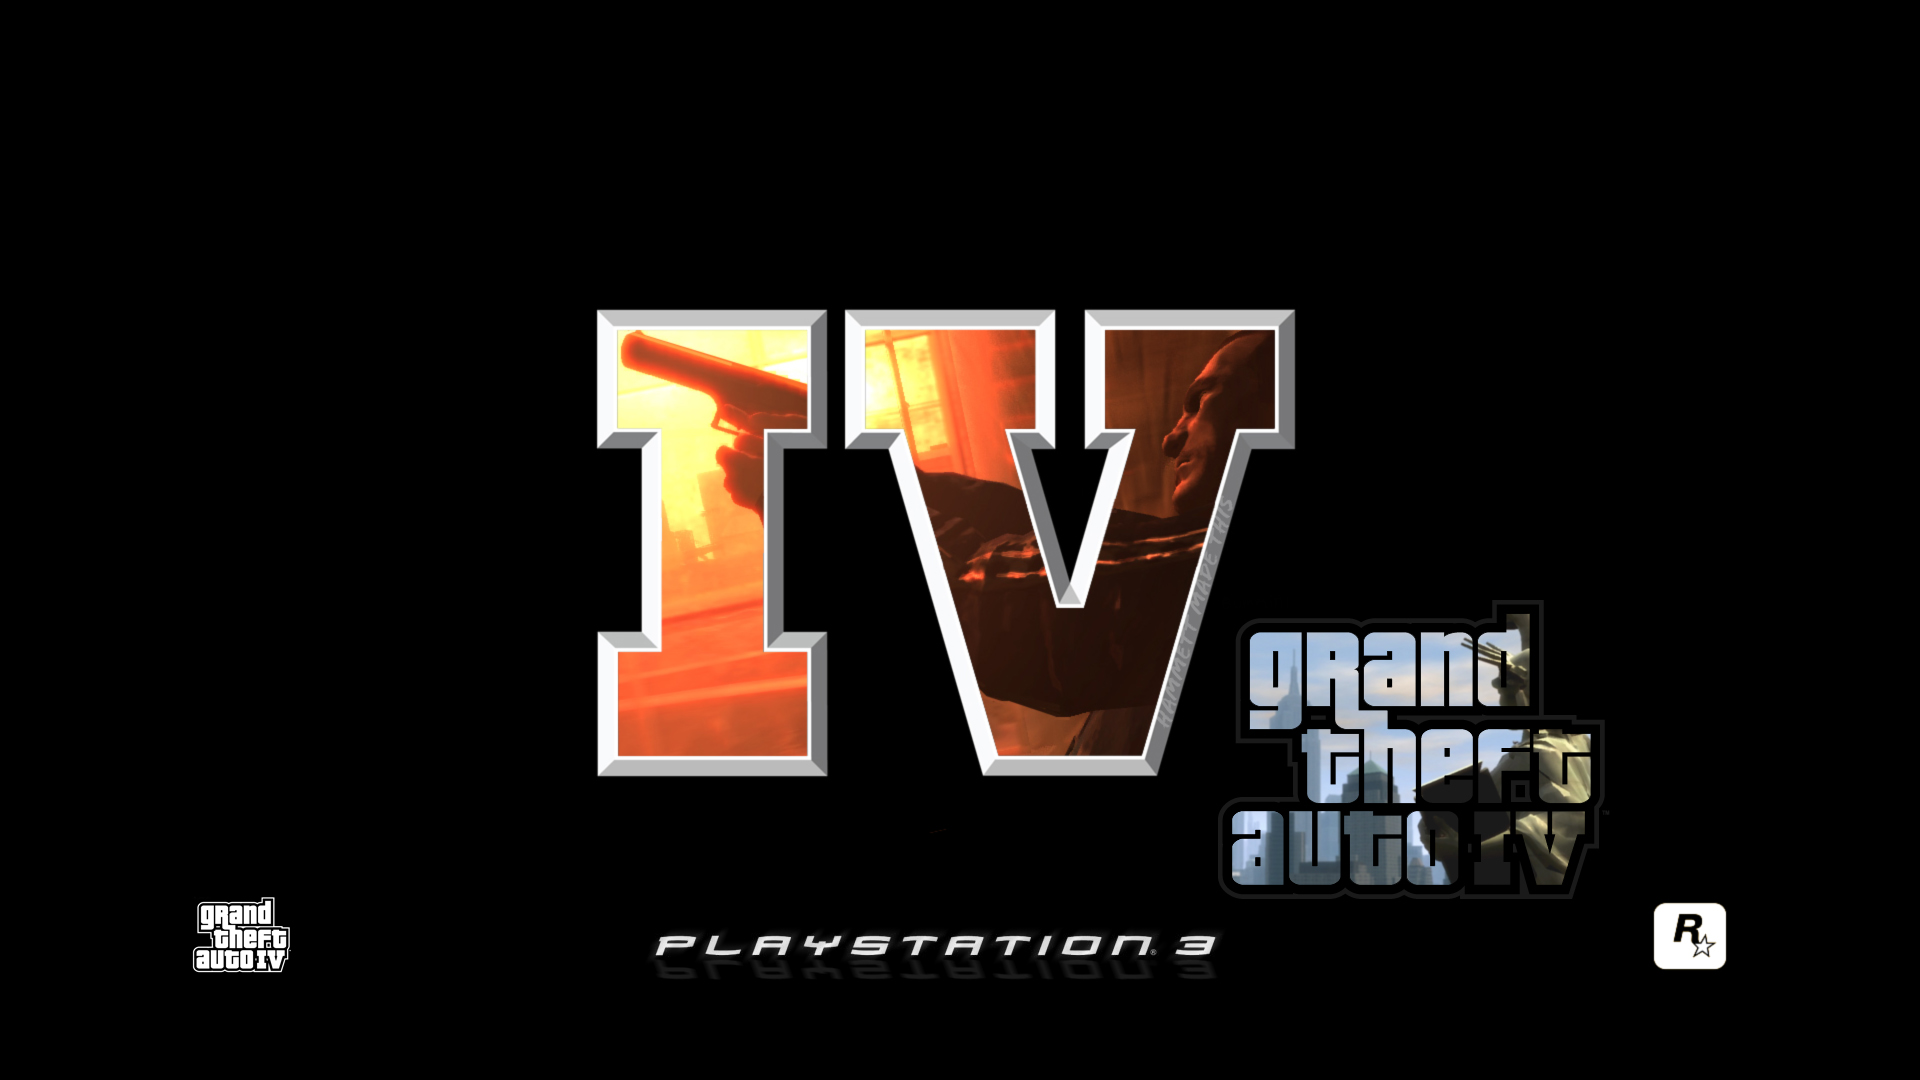 This is a Grand Theft Auto 4 wallpaper. This Grand Theft Auto 4 background